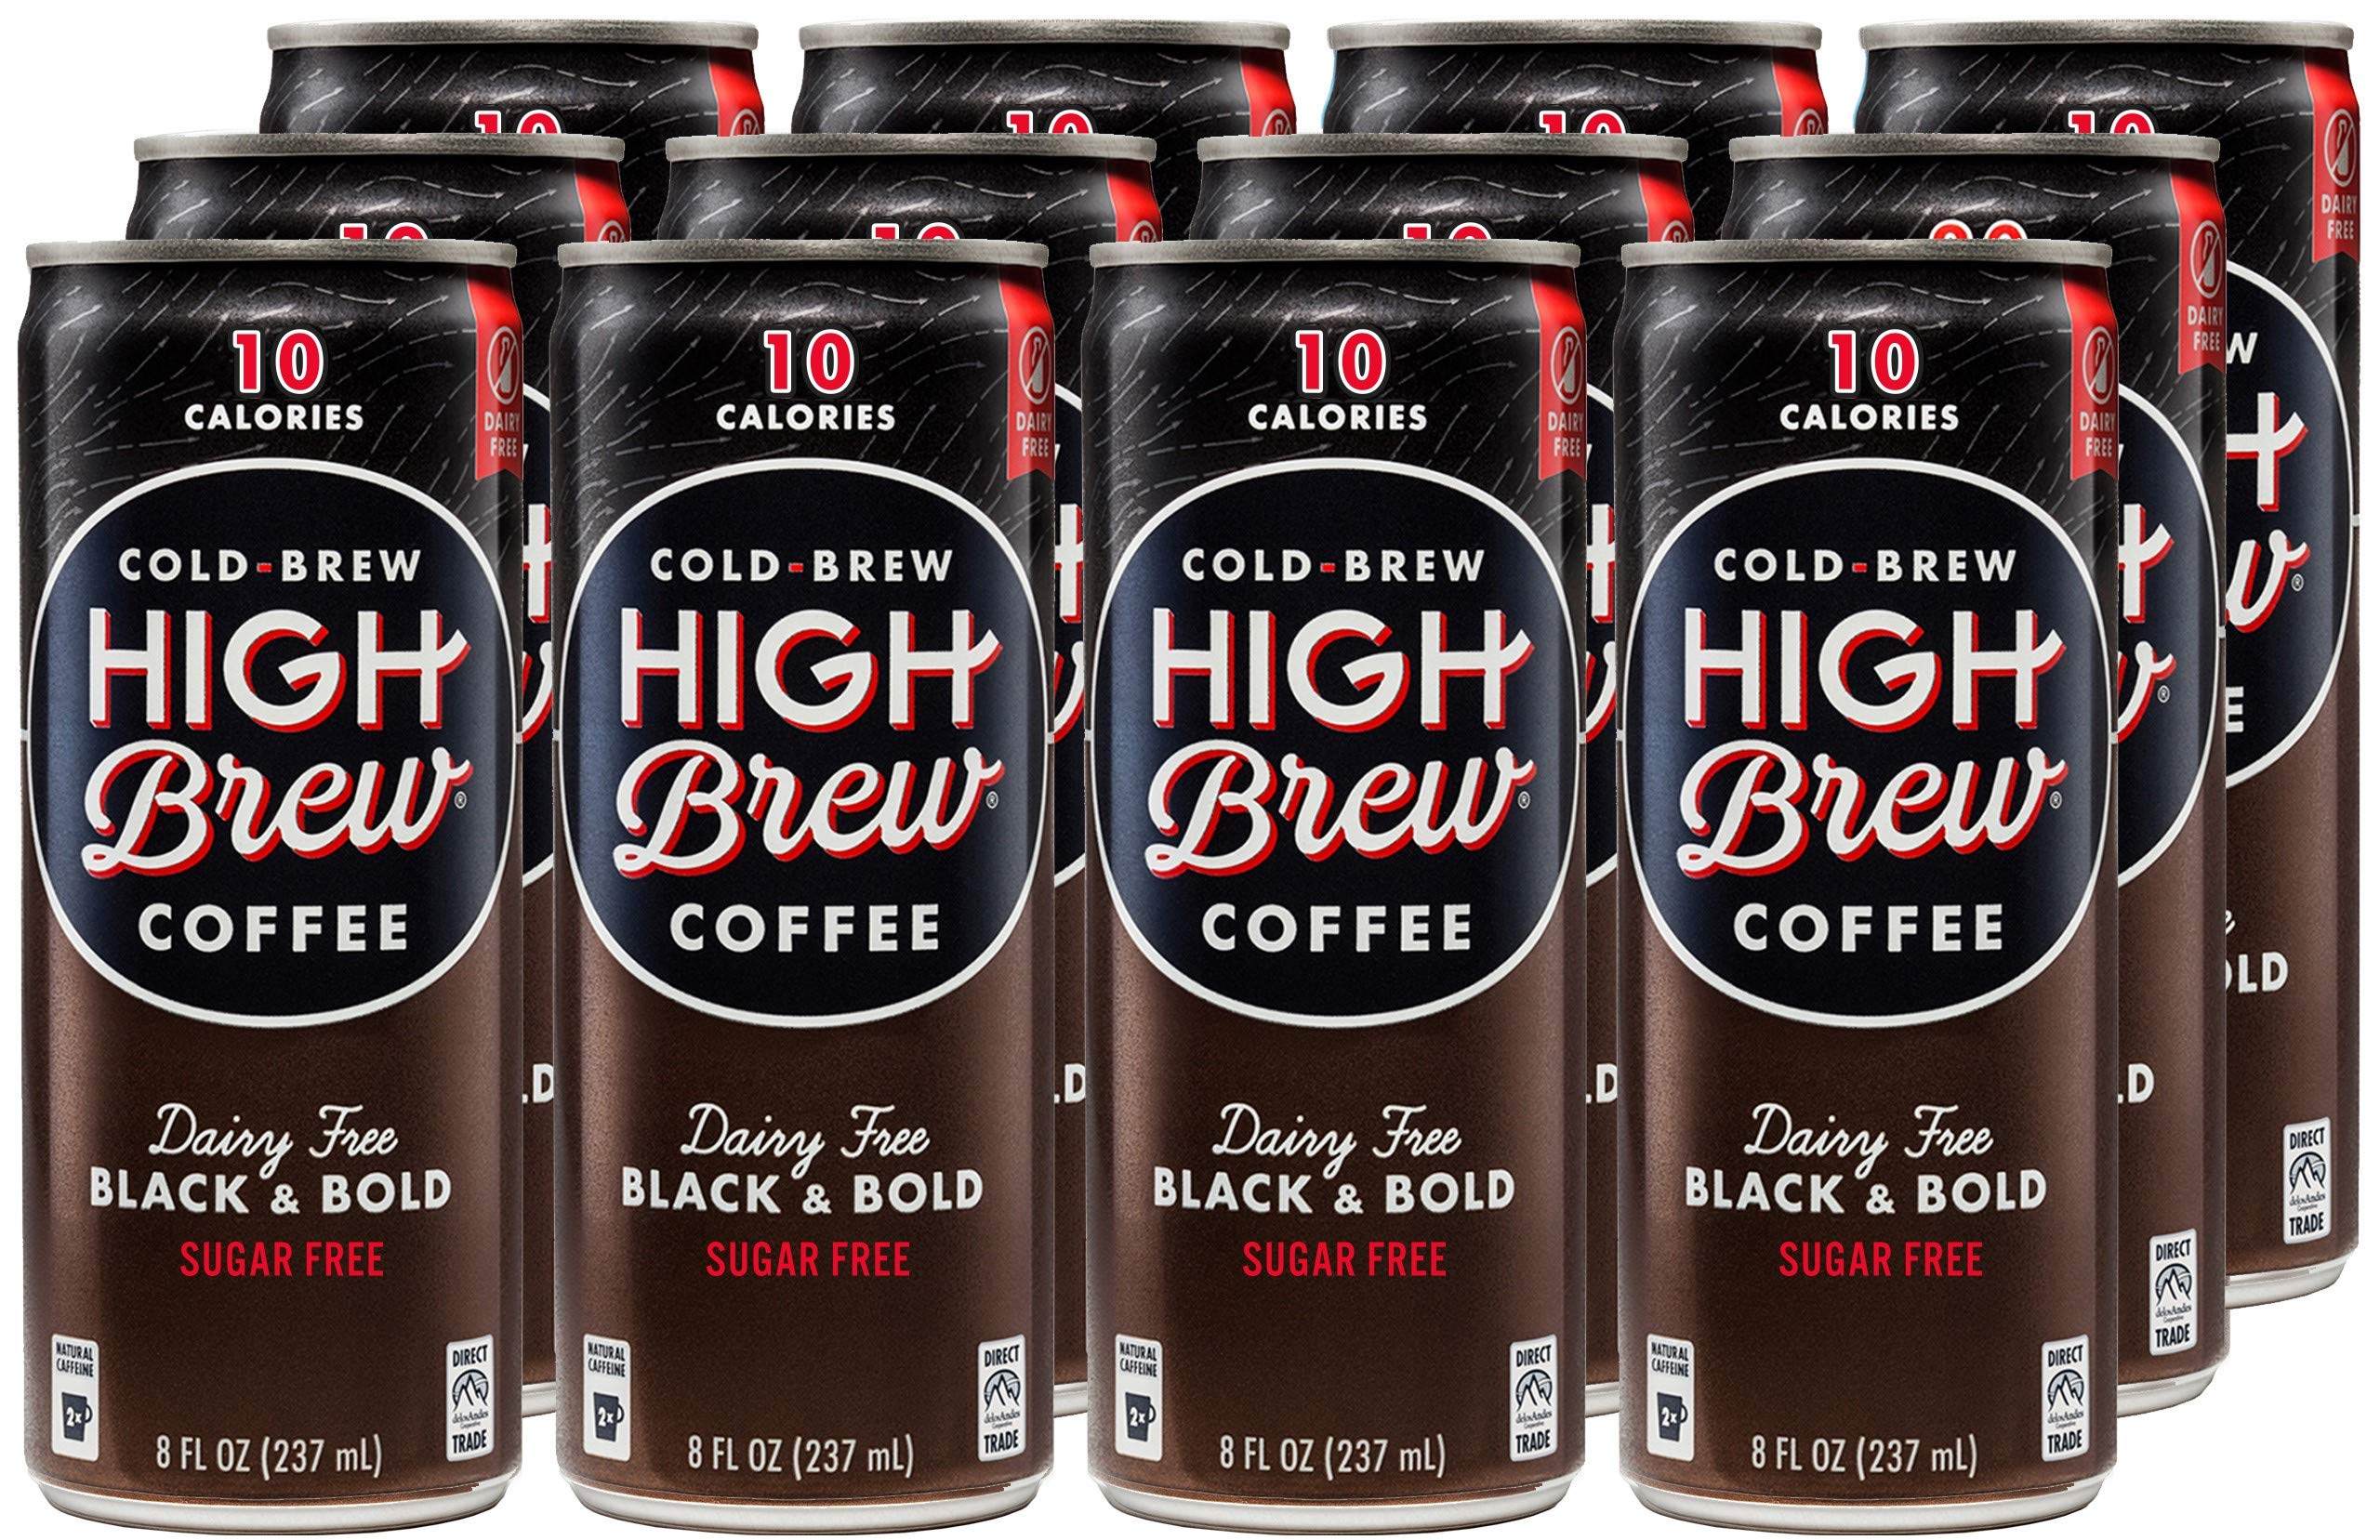 High Brew Cold Brew Coffee, Black & Bold, Dairy Free, 8 Ounce Can (12 Count) by High Brew Coffee